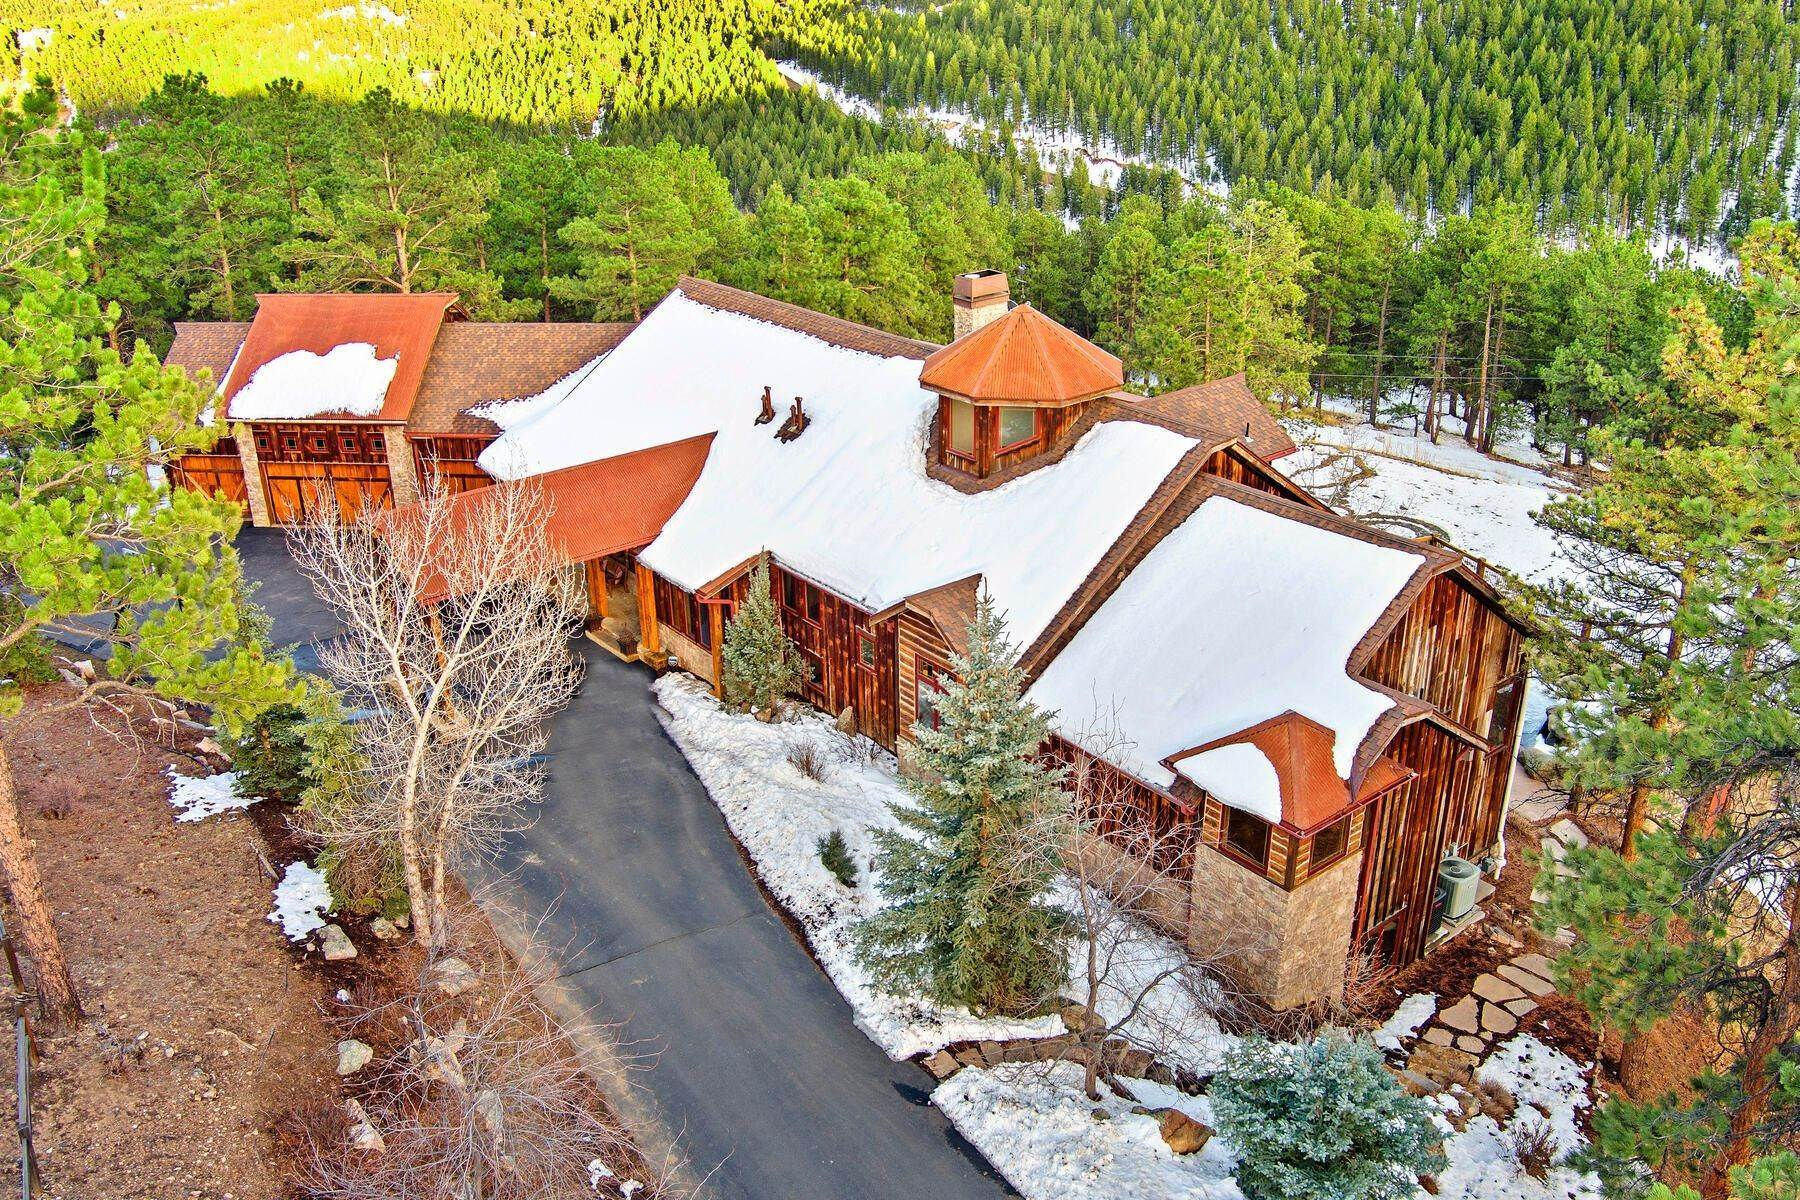 Single Family Homes for Active at 34256 Ranchero Road, Evergreen, Co, 80439 34256 Ranchero Road Evergreen, Colorado 80439 United States